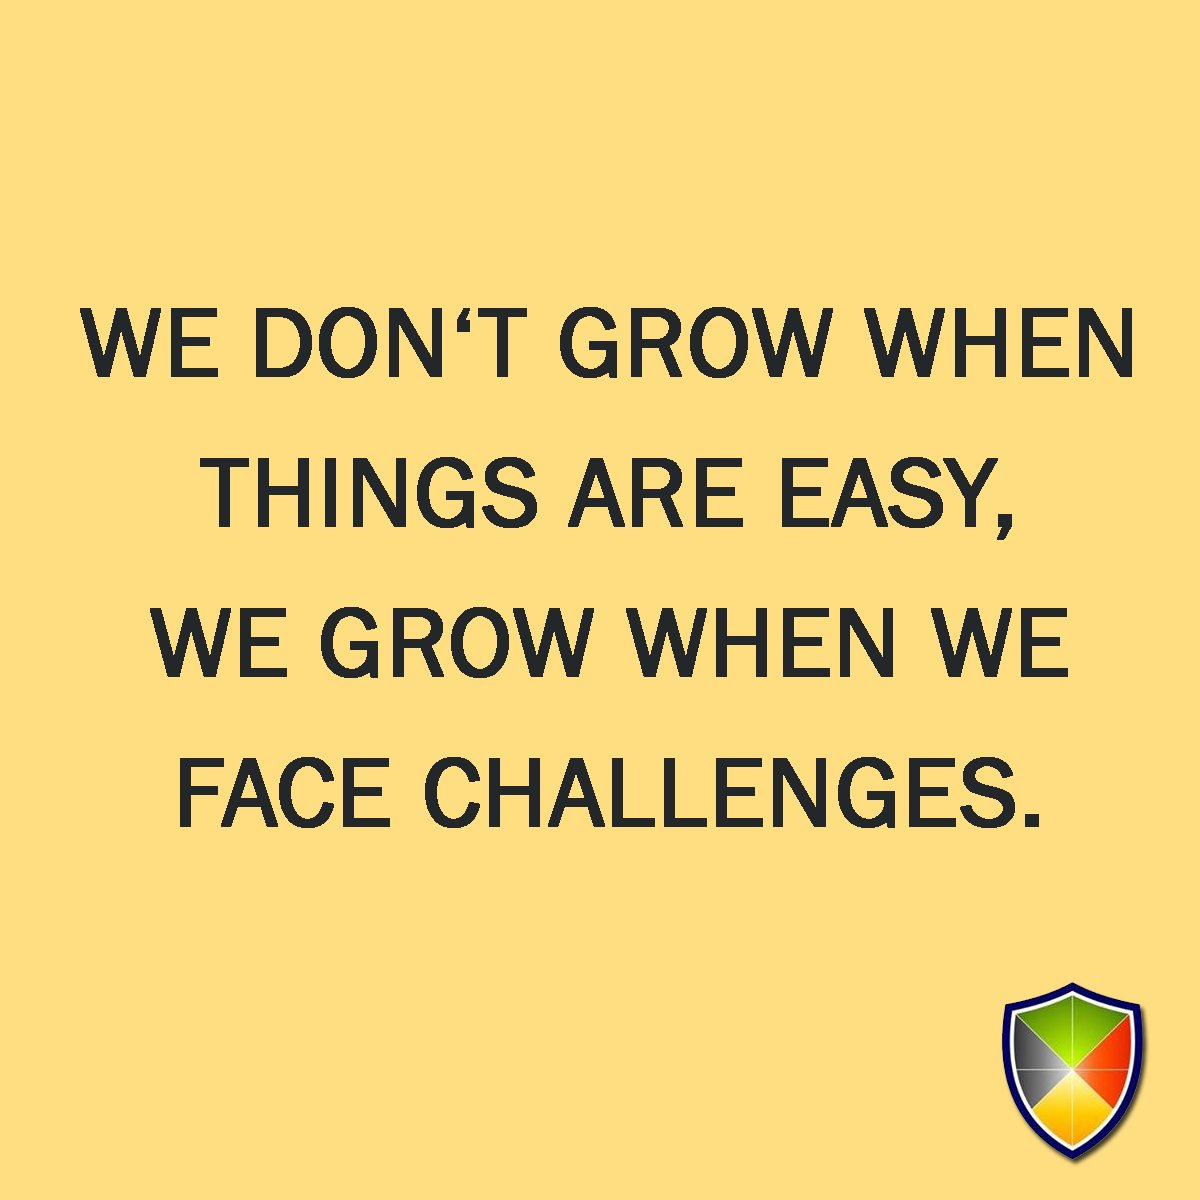 We don&#39;t grow when things are easy, we grow when we face challenges. #sundayshare <br>http://pic.twitter.com/iaT3m280R3